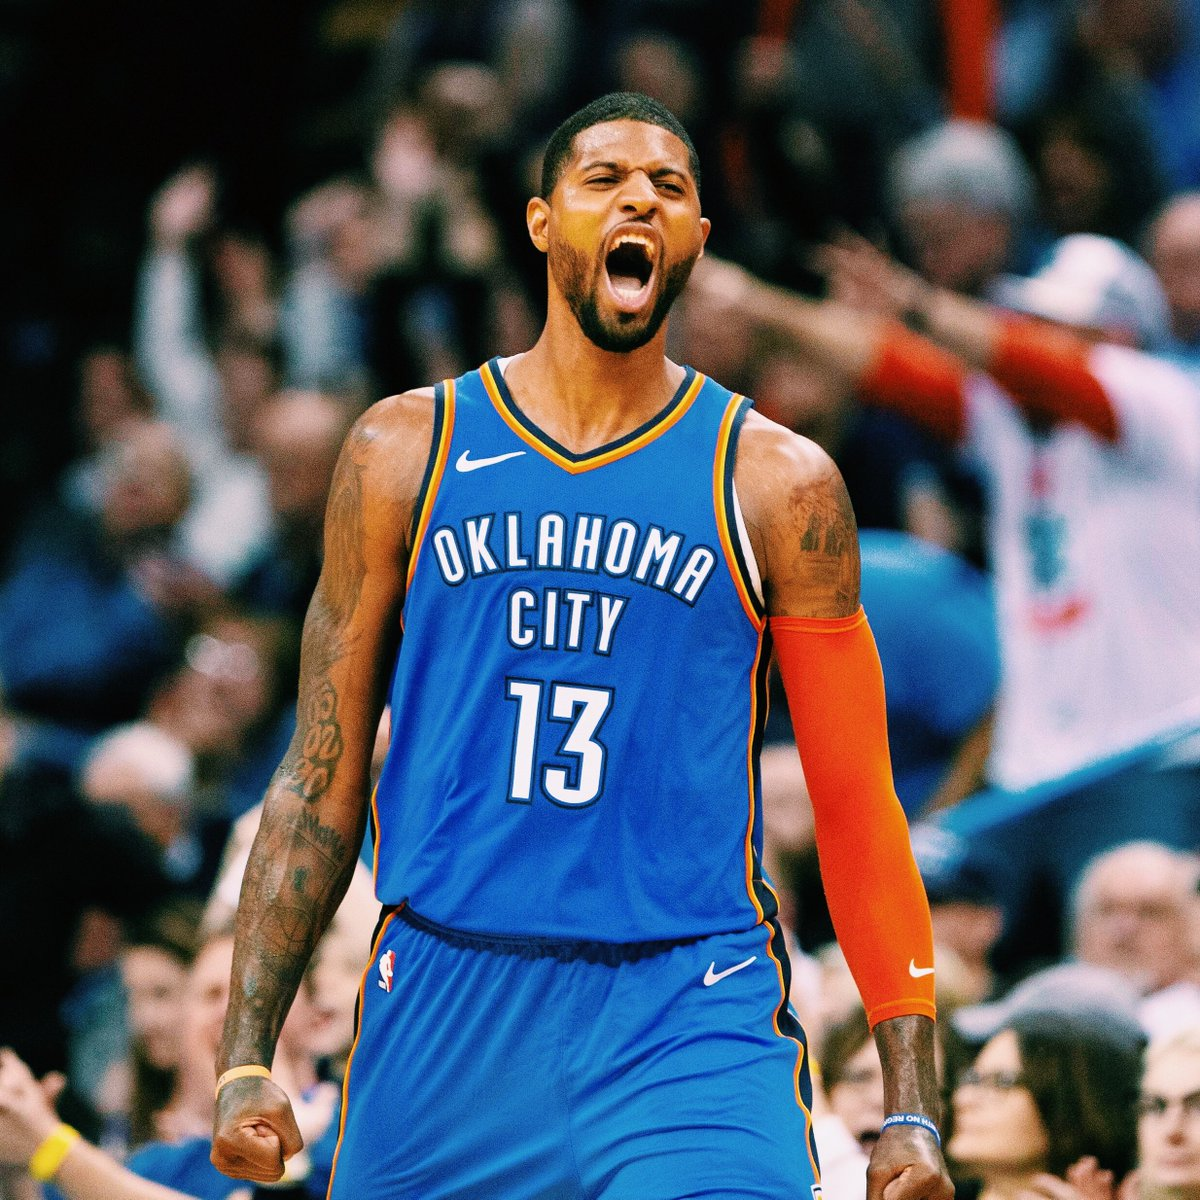 Paul George is making a strong MVP push.  His last 10: 36 PTS, W 37 PTS, W 43 PTS, W 37 PTS, L 39 PTS, W 27 PTS, W 45 PTS, W 47 PTS, W 28 PTS, L 45 PTS, W